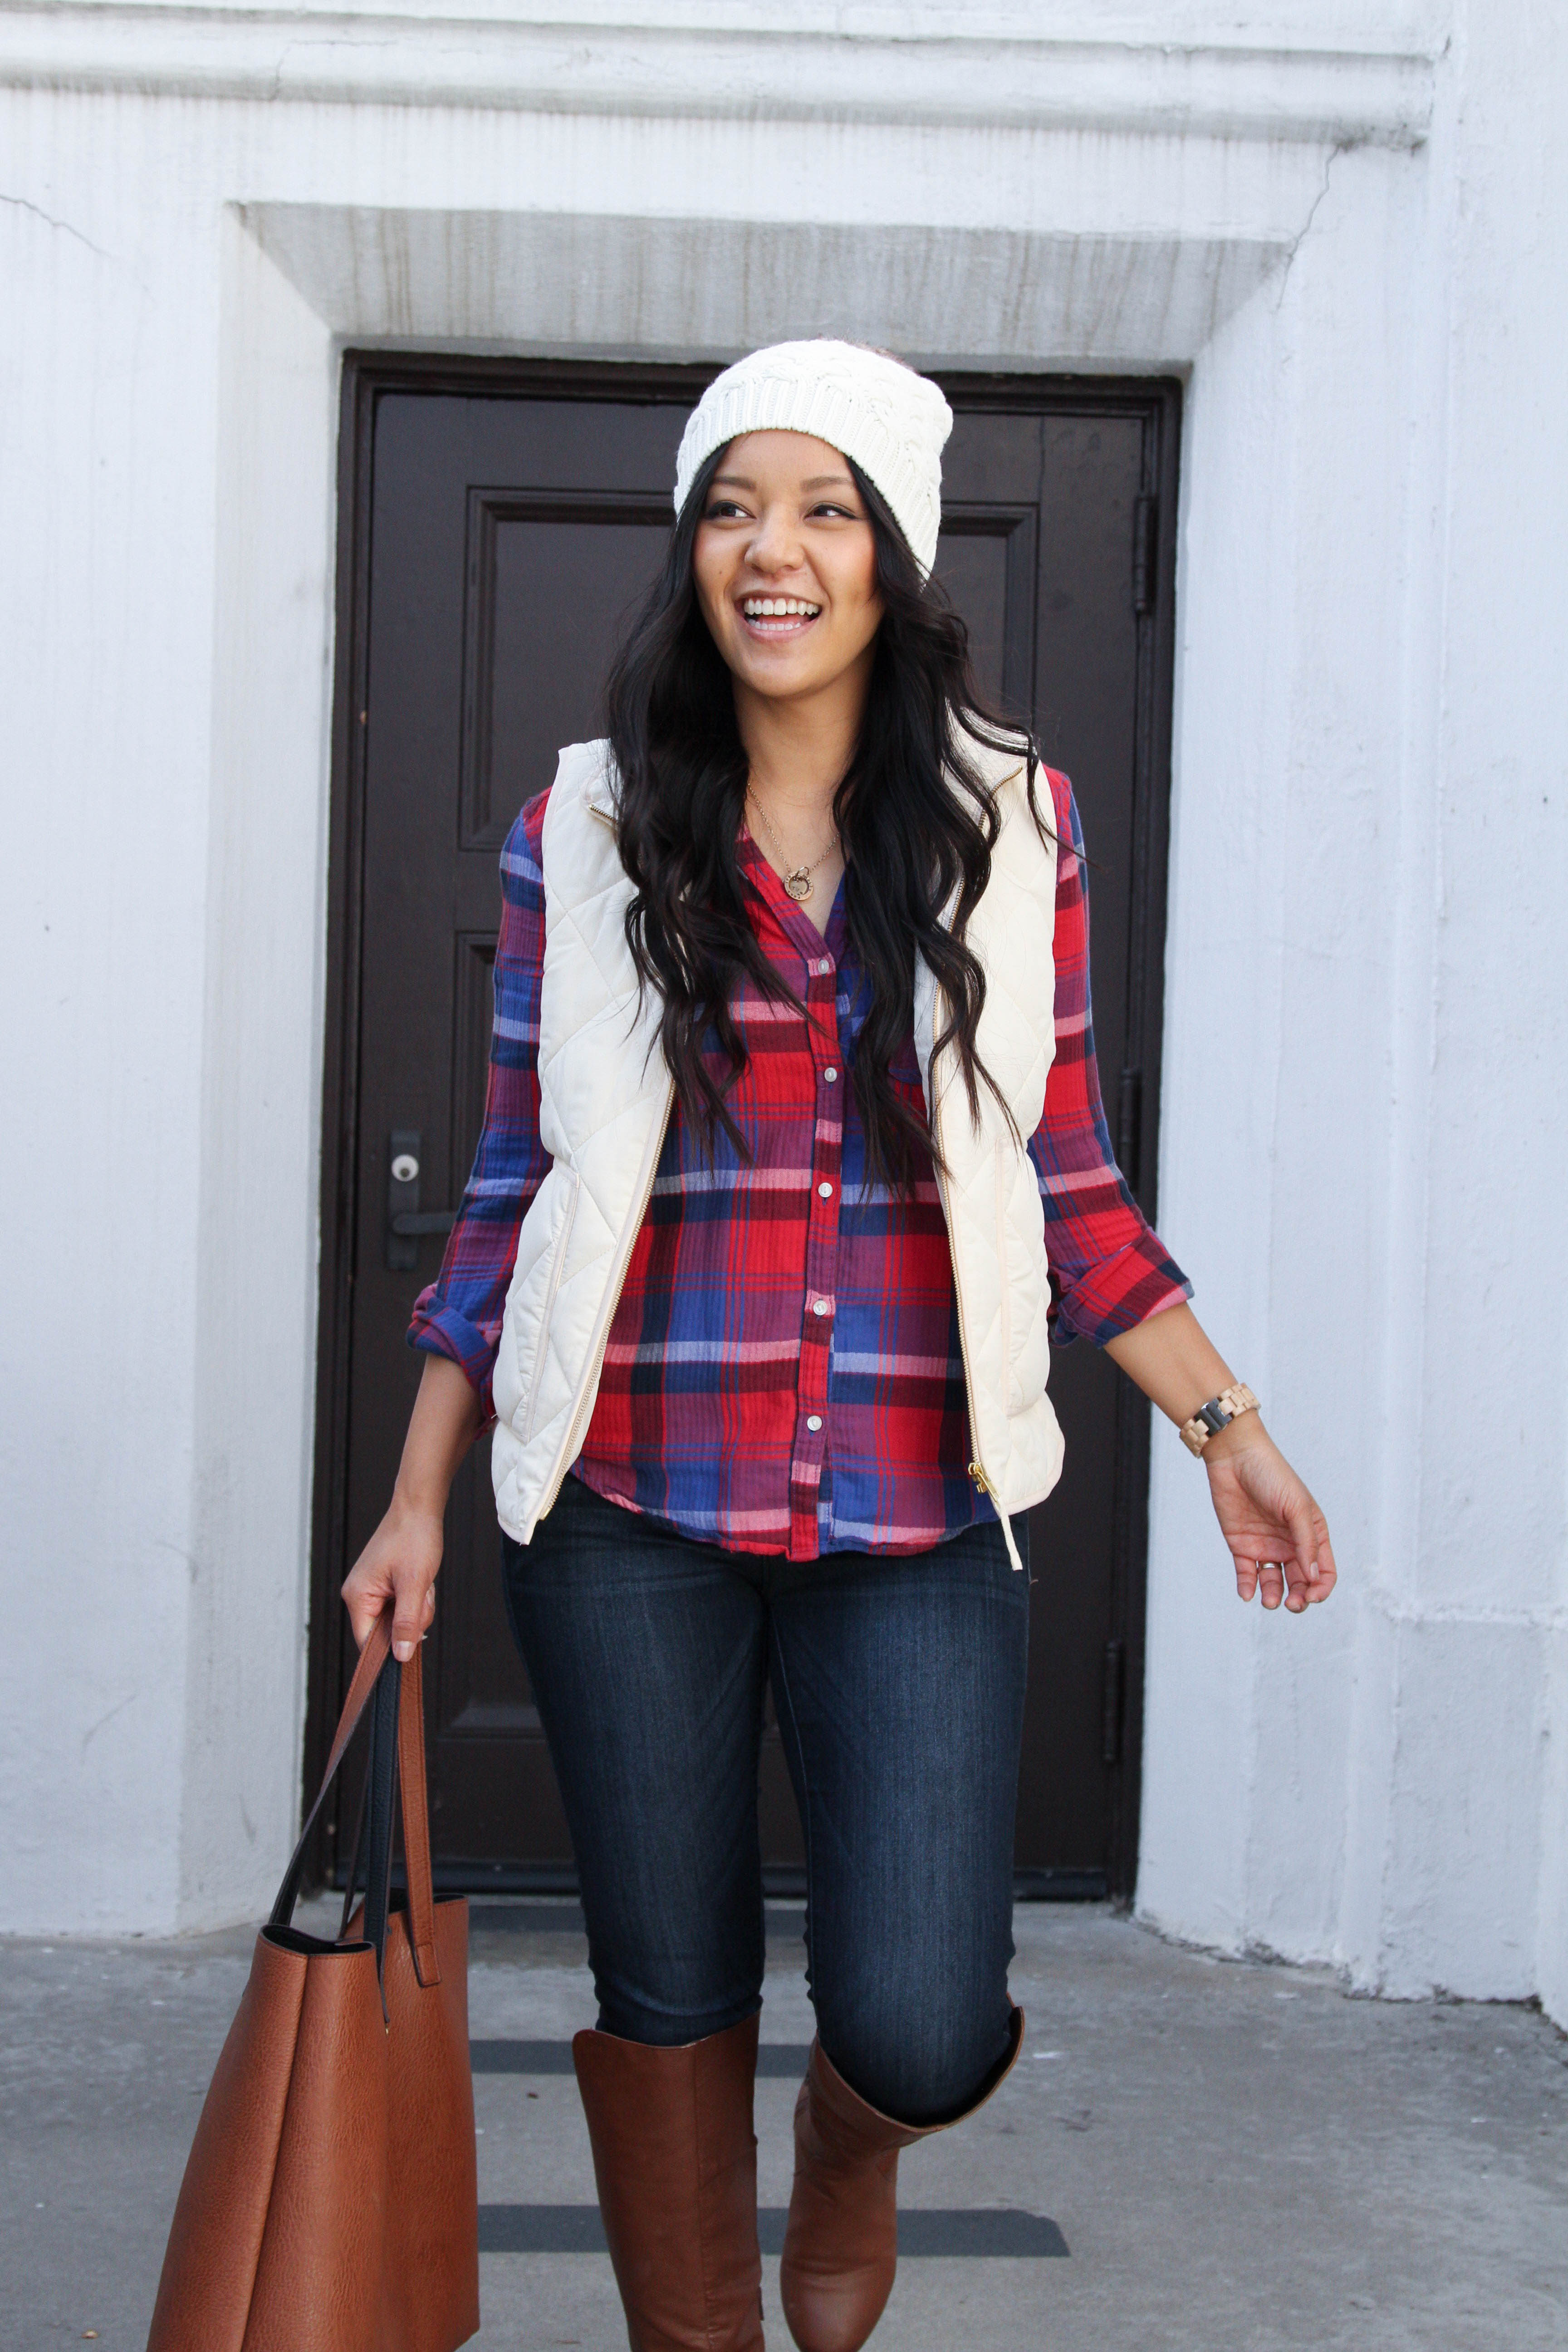 Red Plaid + White Vest + White hat + Cognac Tote + Riding Boots